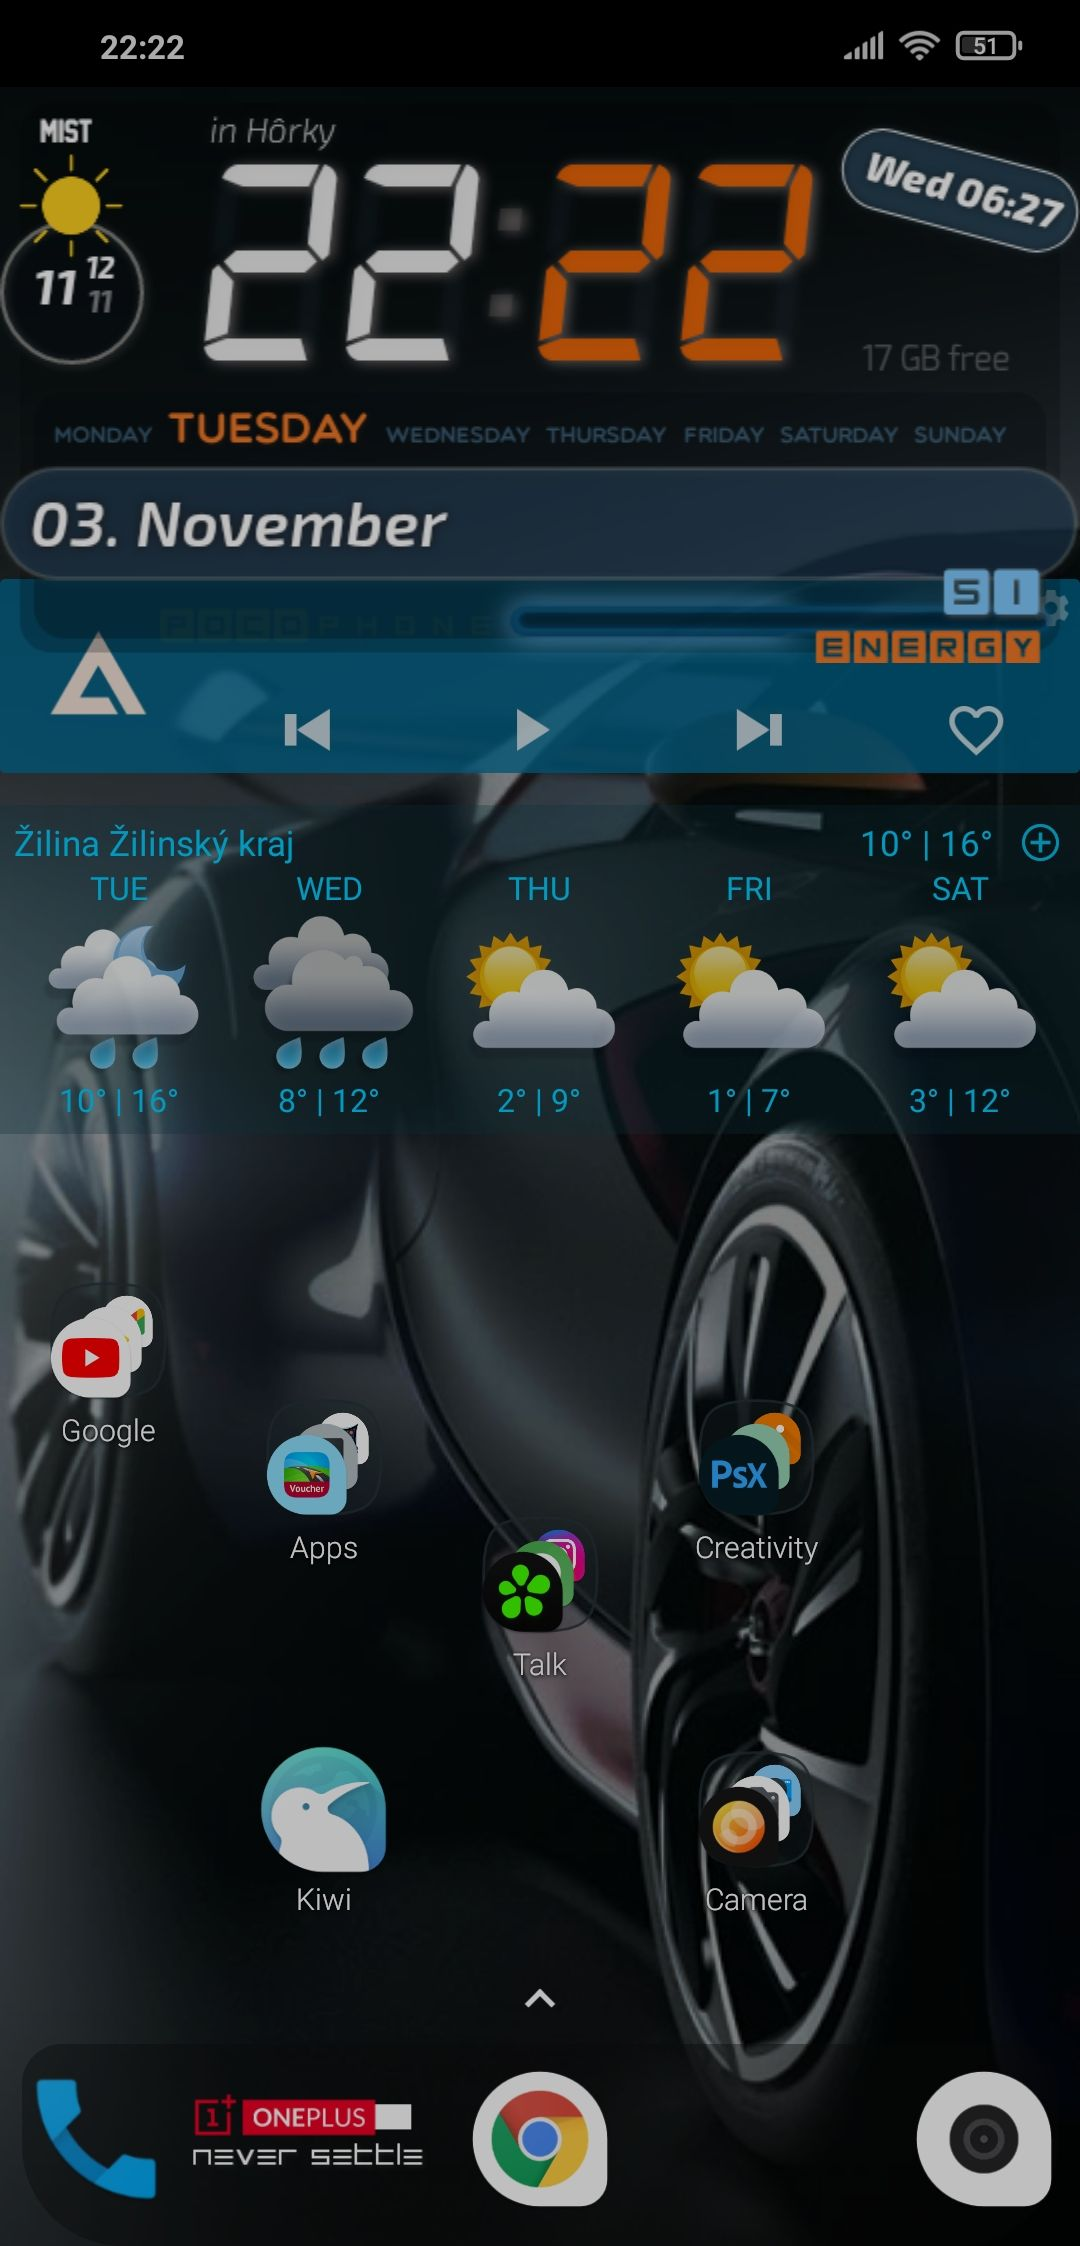 Screenshot_2020-11-03-22-22-21-435_com.teslacoilsw.launcher.jpg